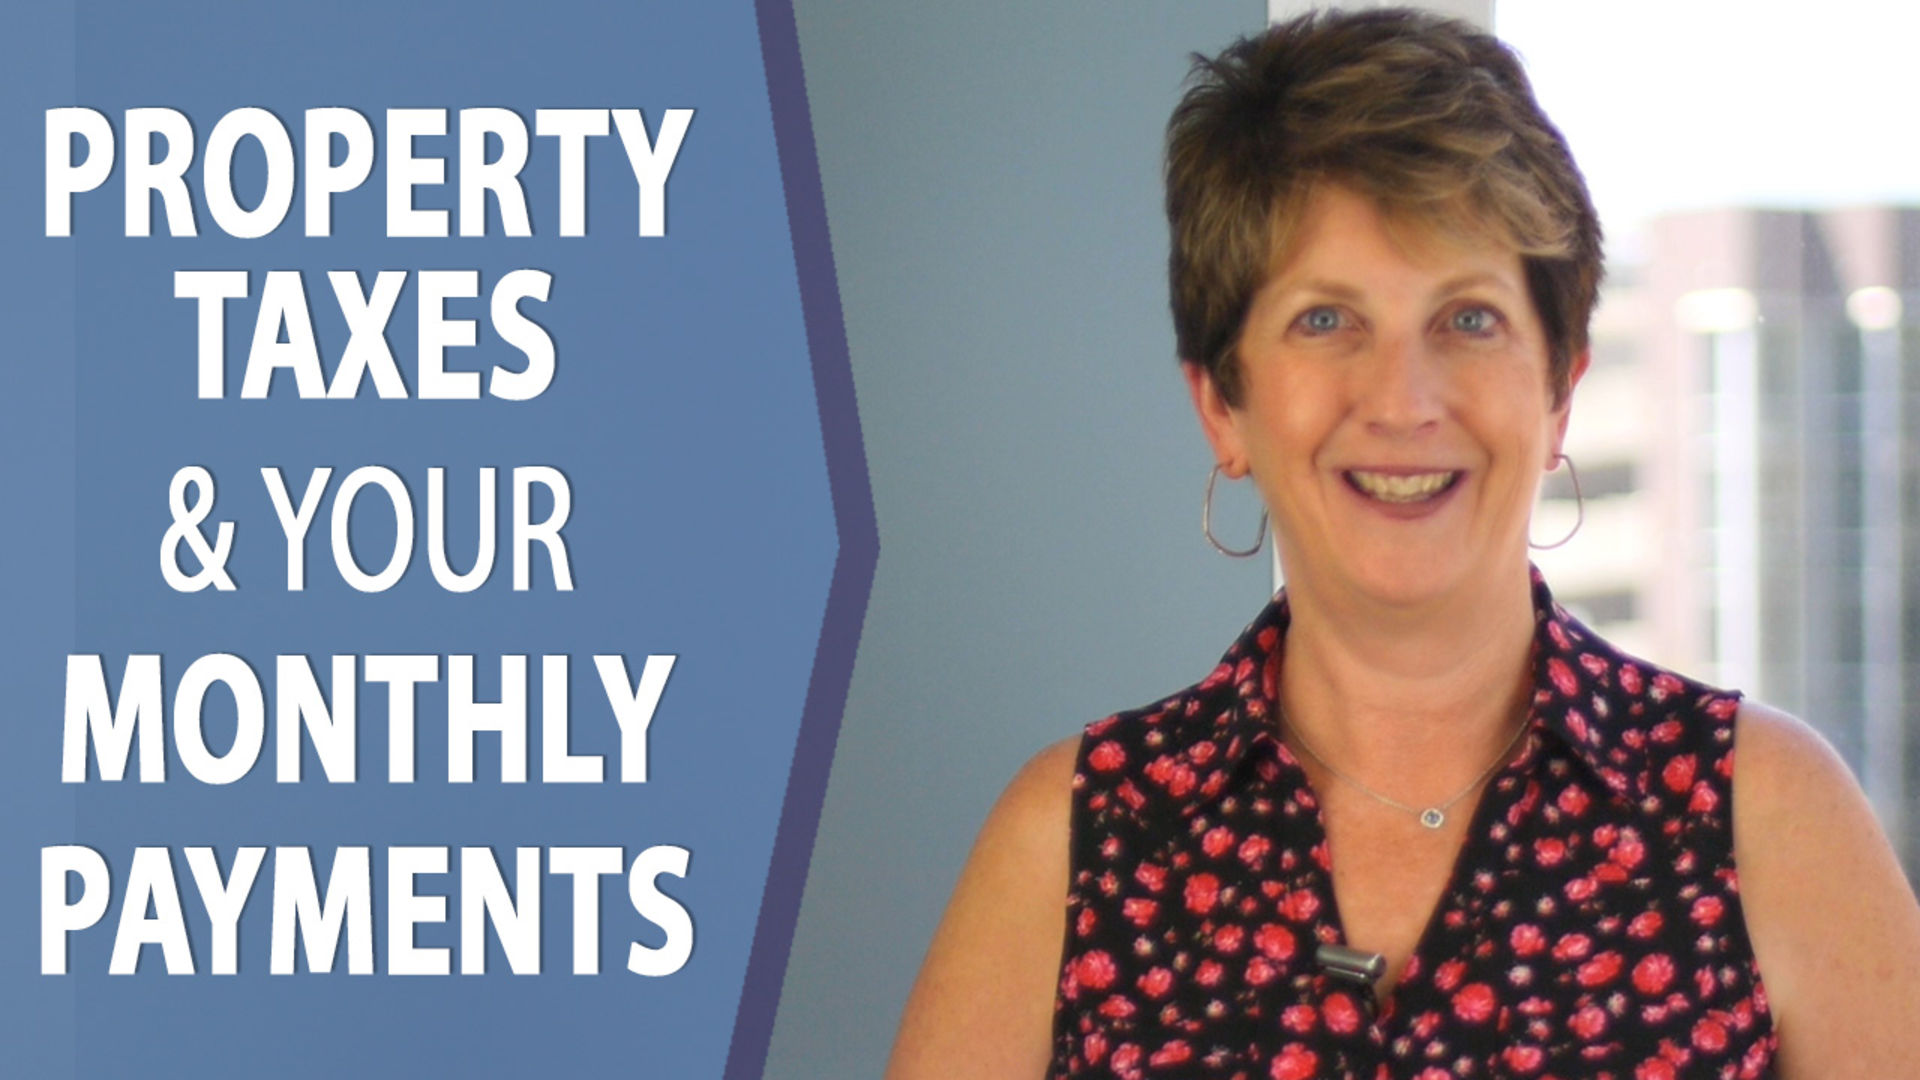 How Do Property Taxes Affect Your Monthly Payments?